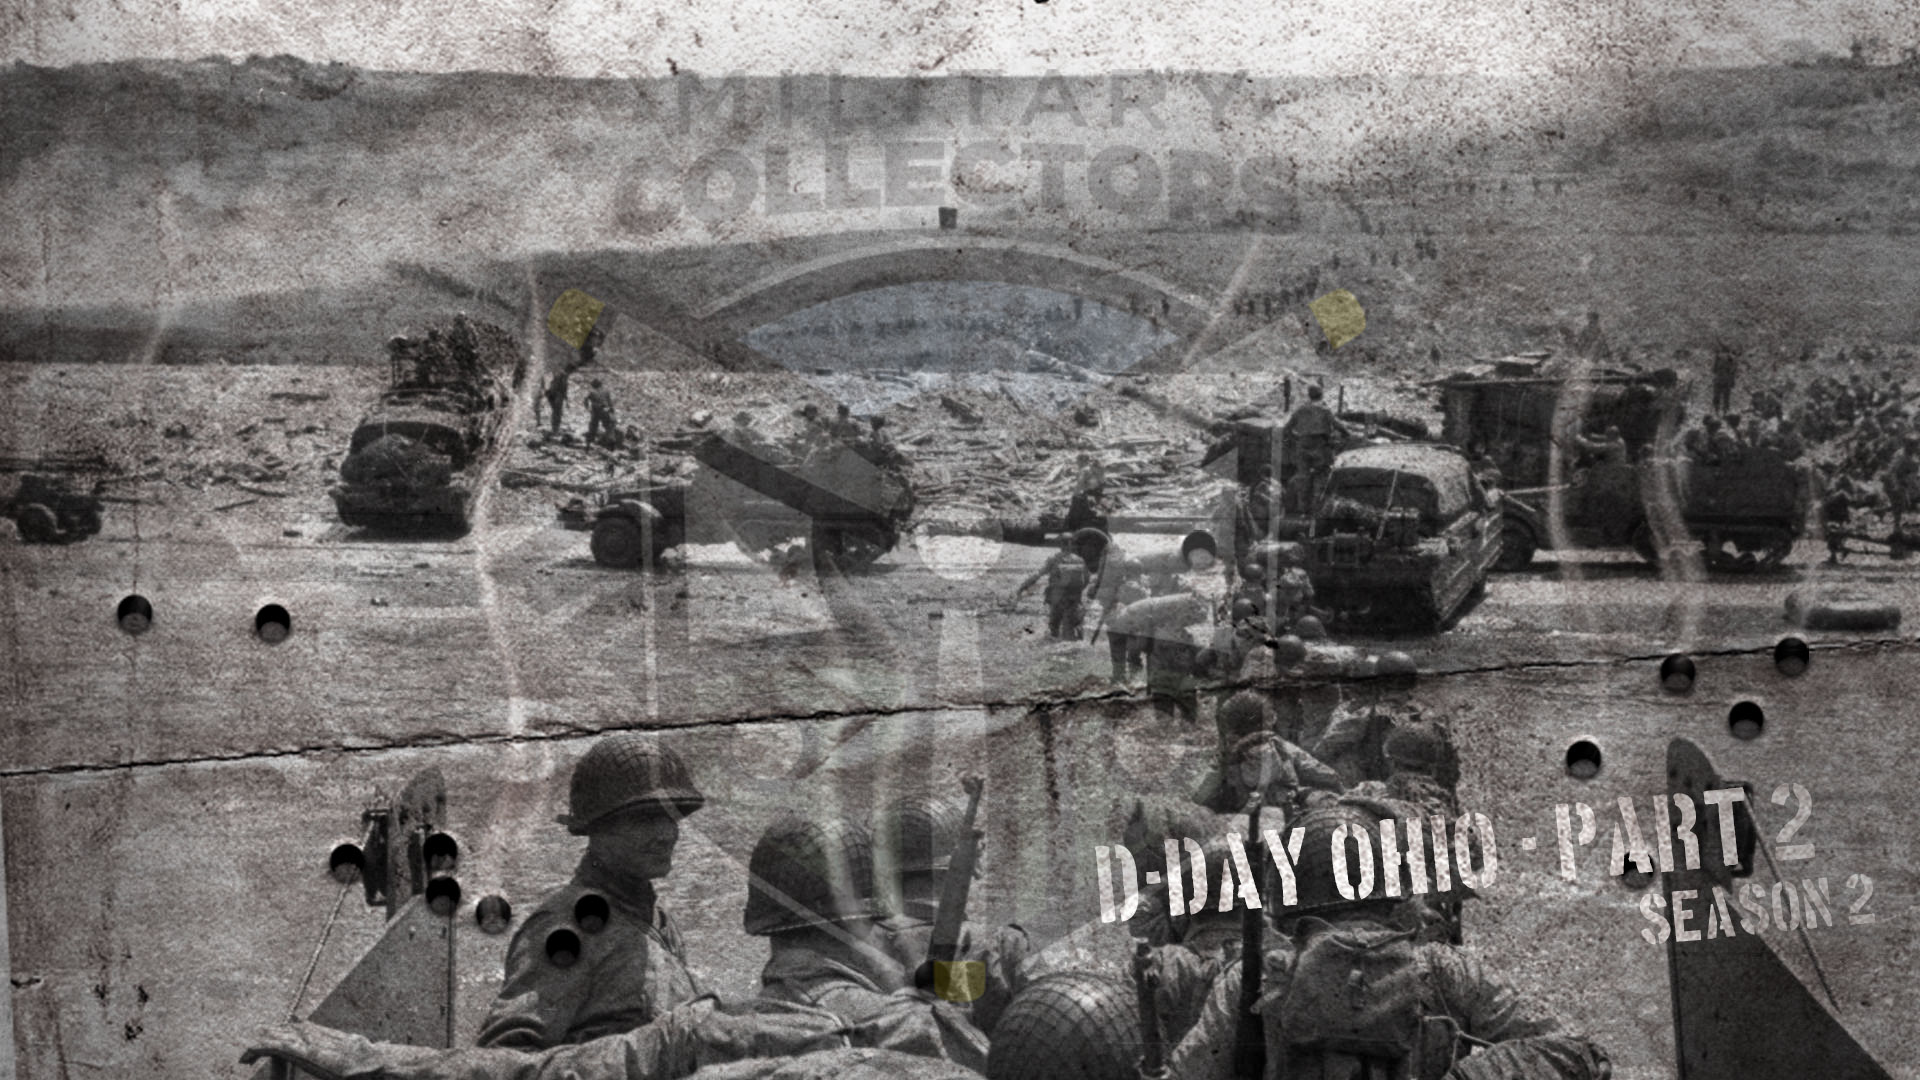 D-Day Ohio Part 2